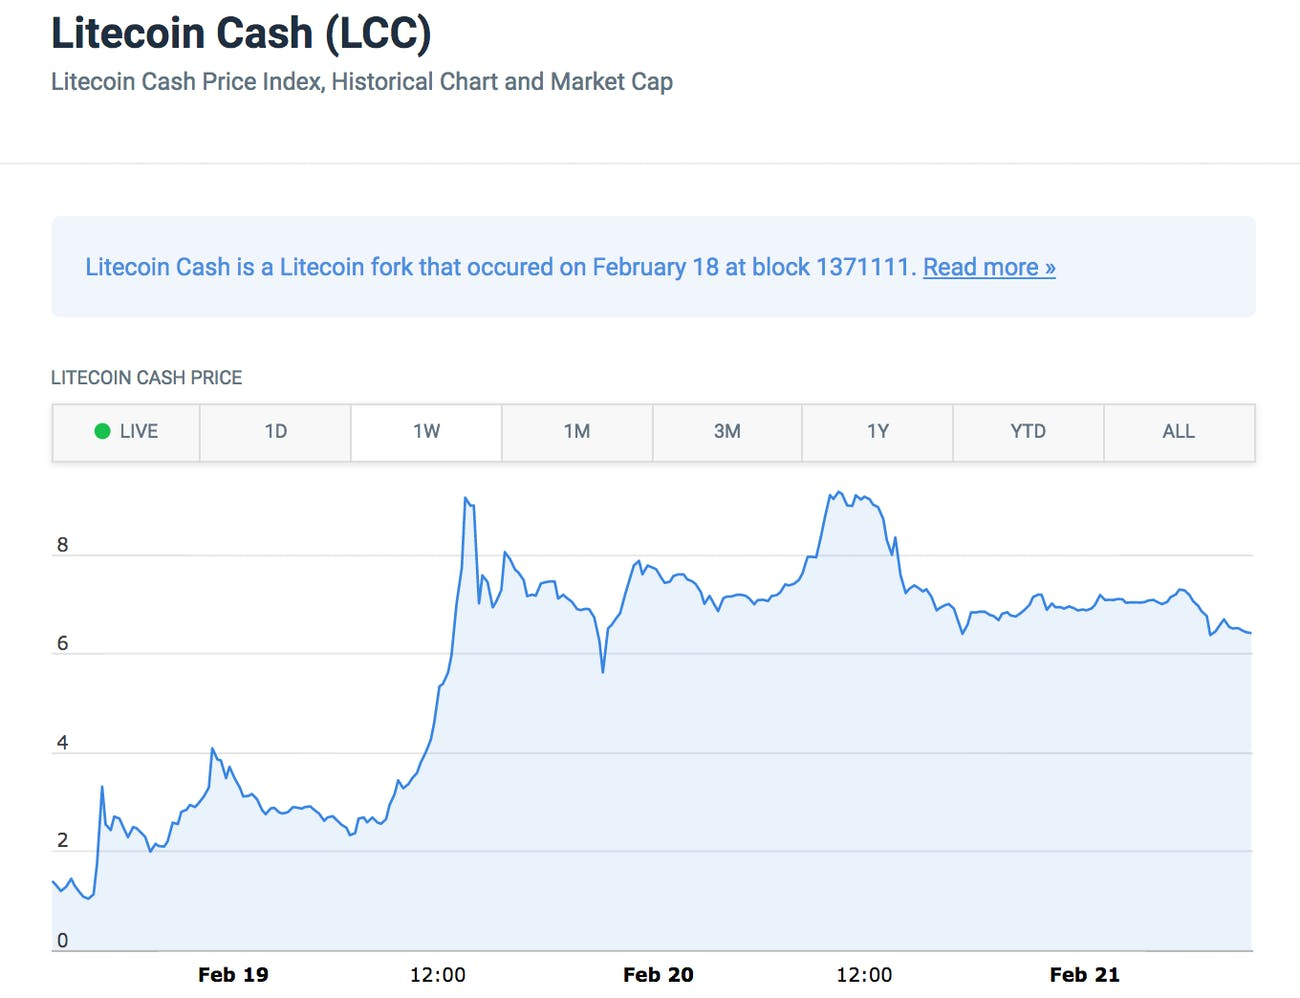 The value of Litecoin Cash at 11 a.m. Eastern time via CoinCodex.